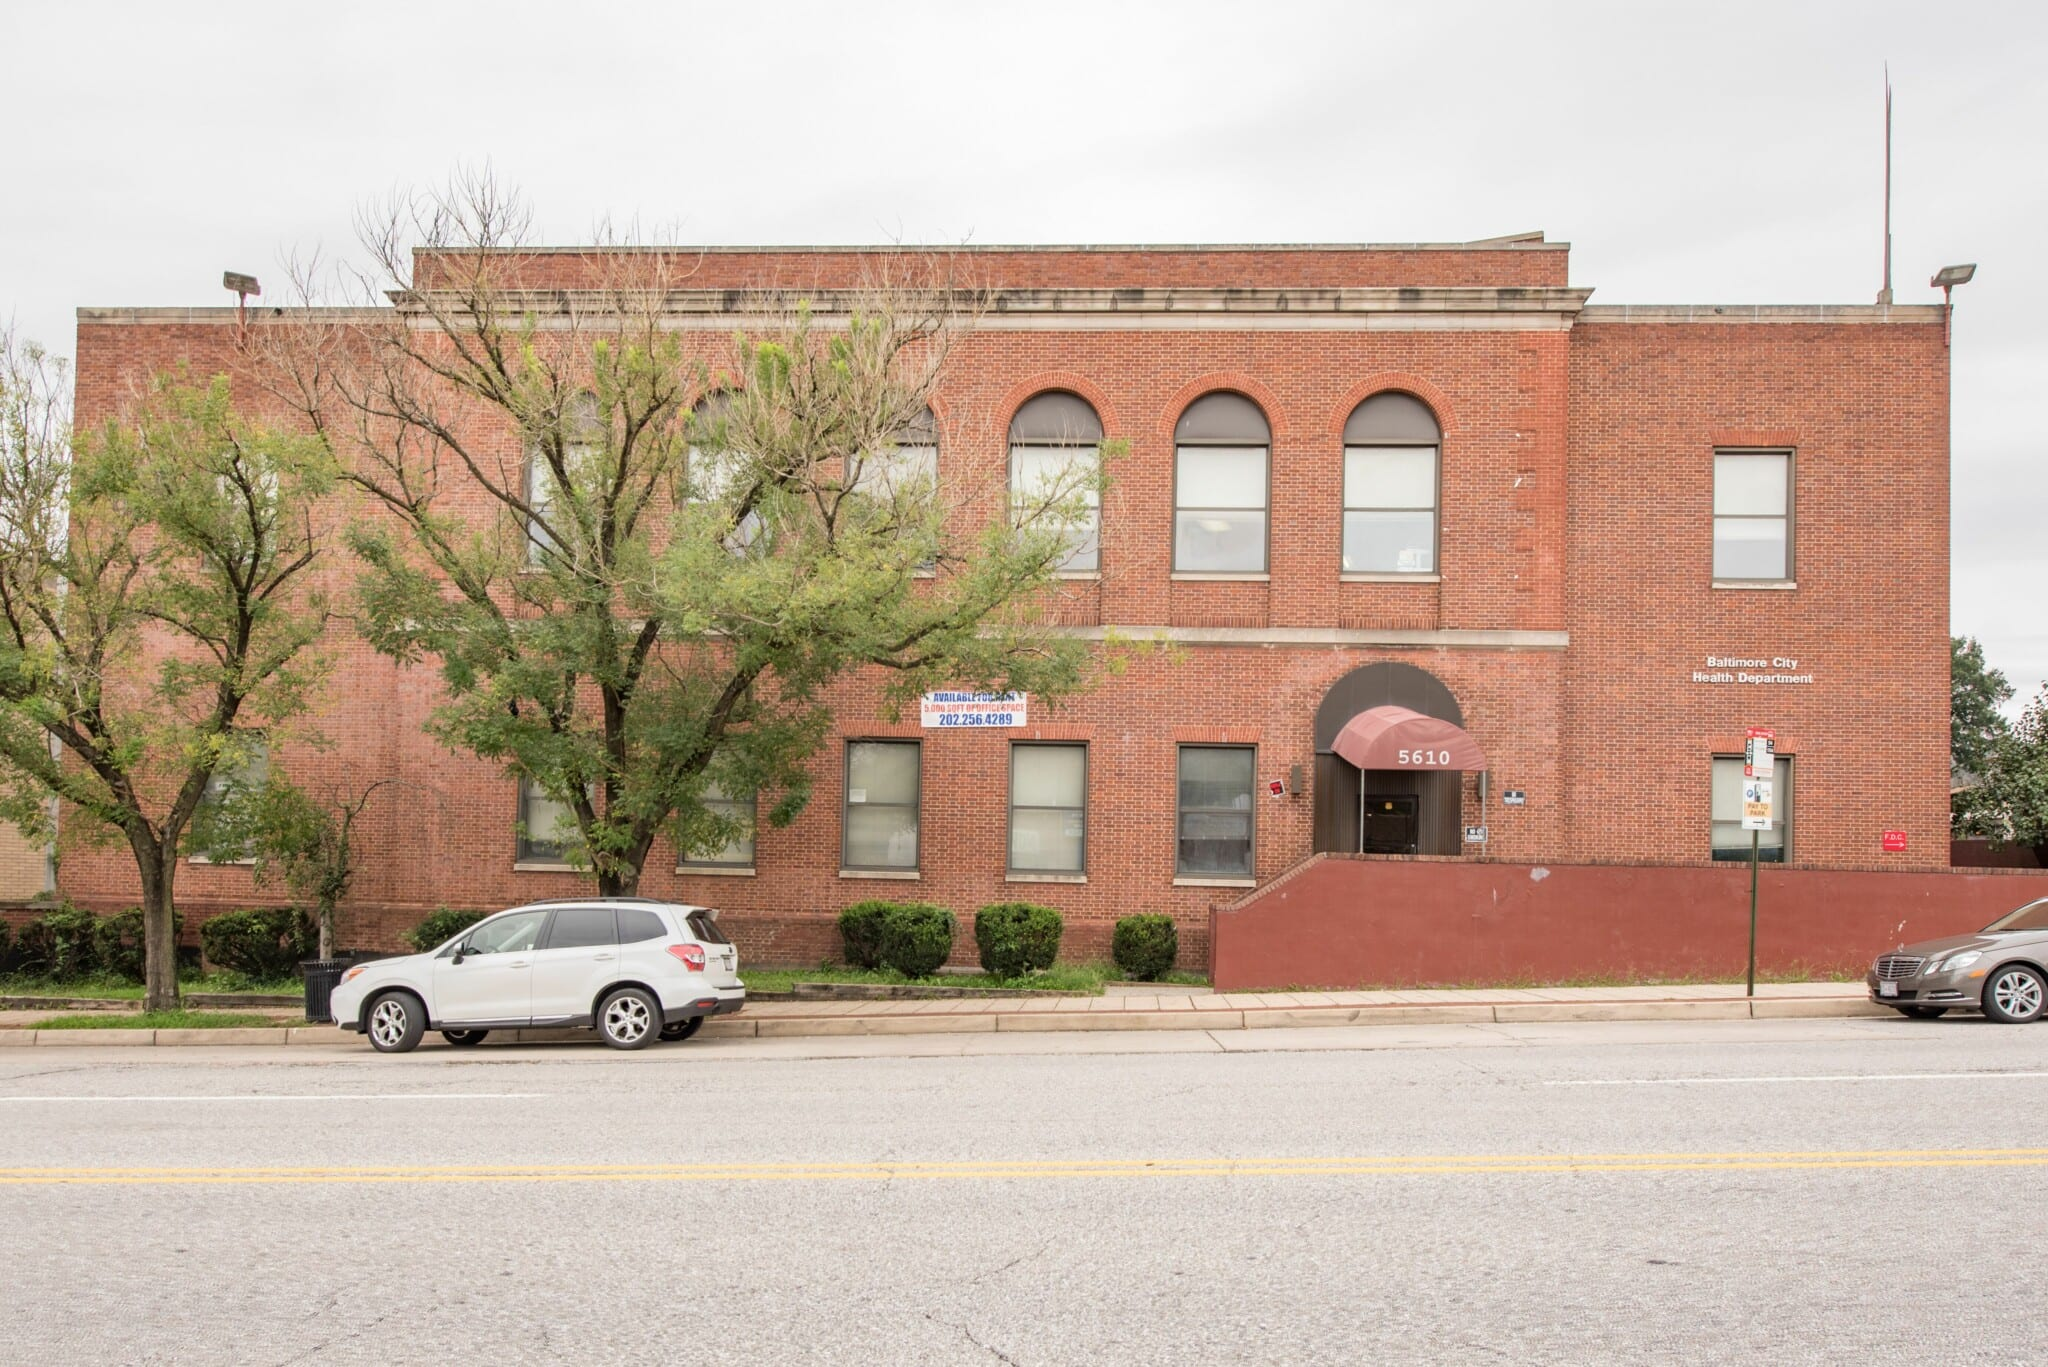 5610 Harford Rd: 15,000 sq. ft. office building, 11.22% cap rate